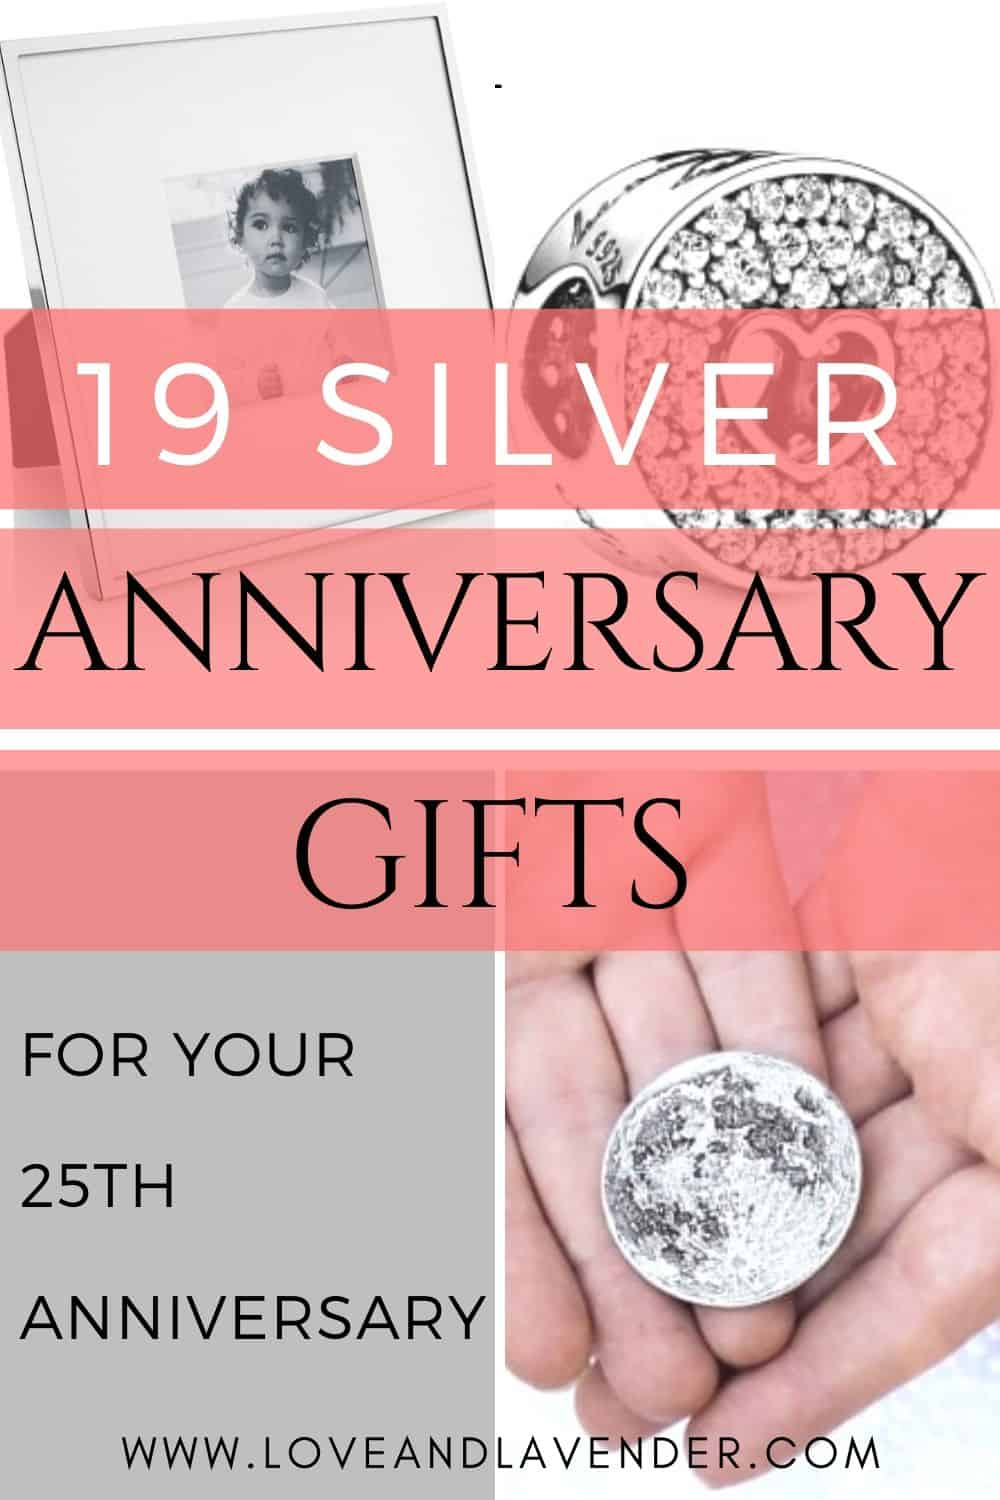 19 Stunning Silver Wedding Anniversary Gifts 25th Year For Him Her